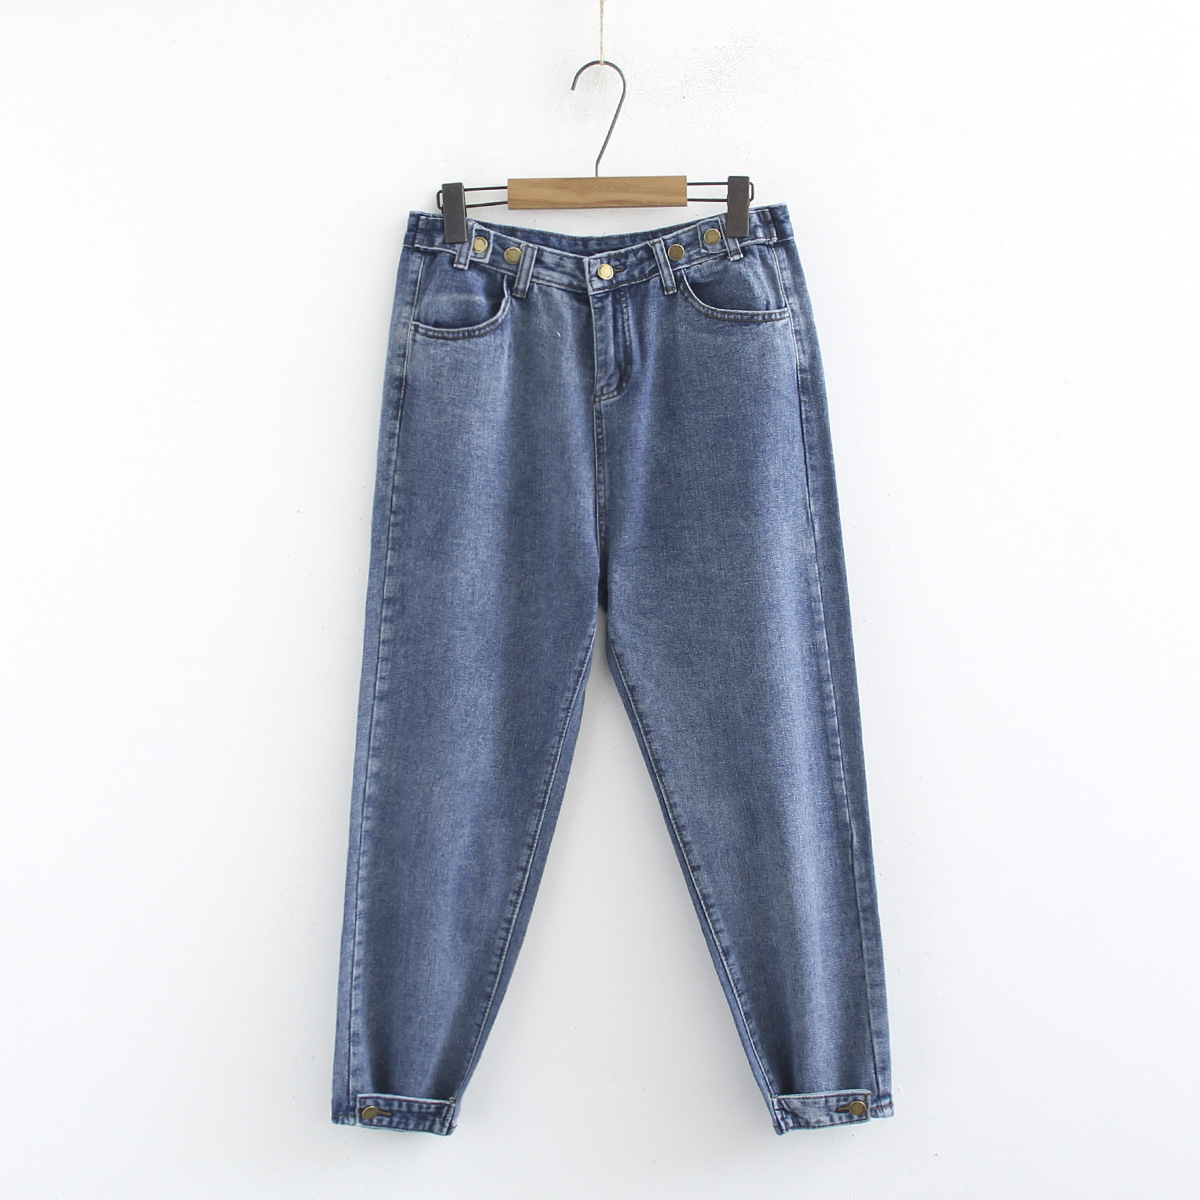 Winter Casual Loose Denim Blue Jeans for Girls Vintage Ladies Wide Retro Jeans Woman Trousers Large Size 3xl 4xl High End Jeans